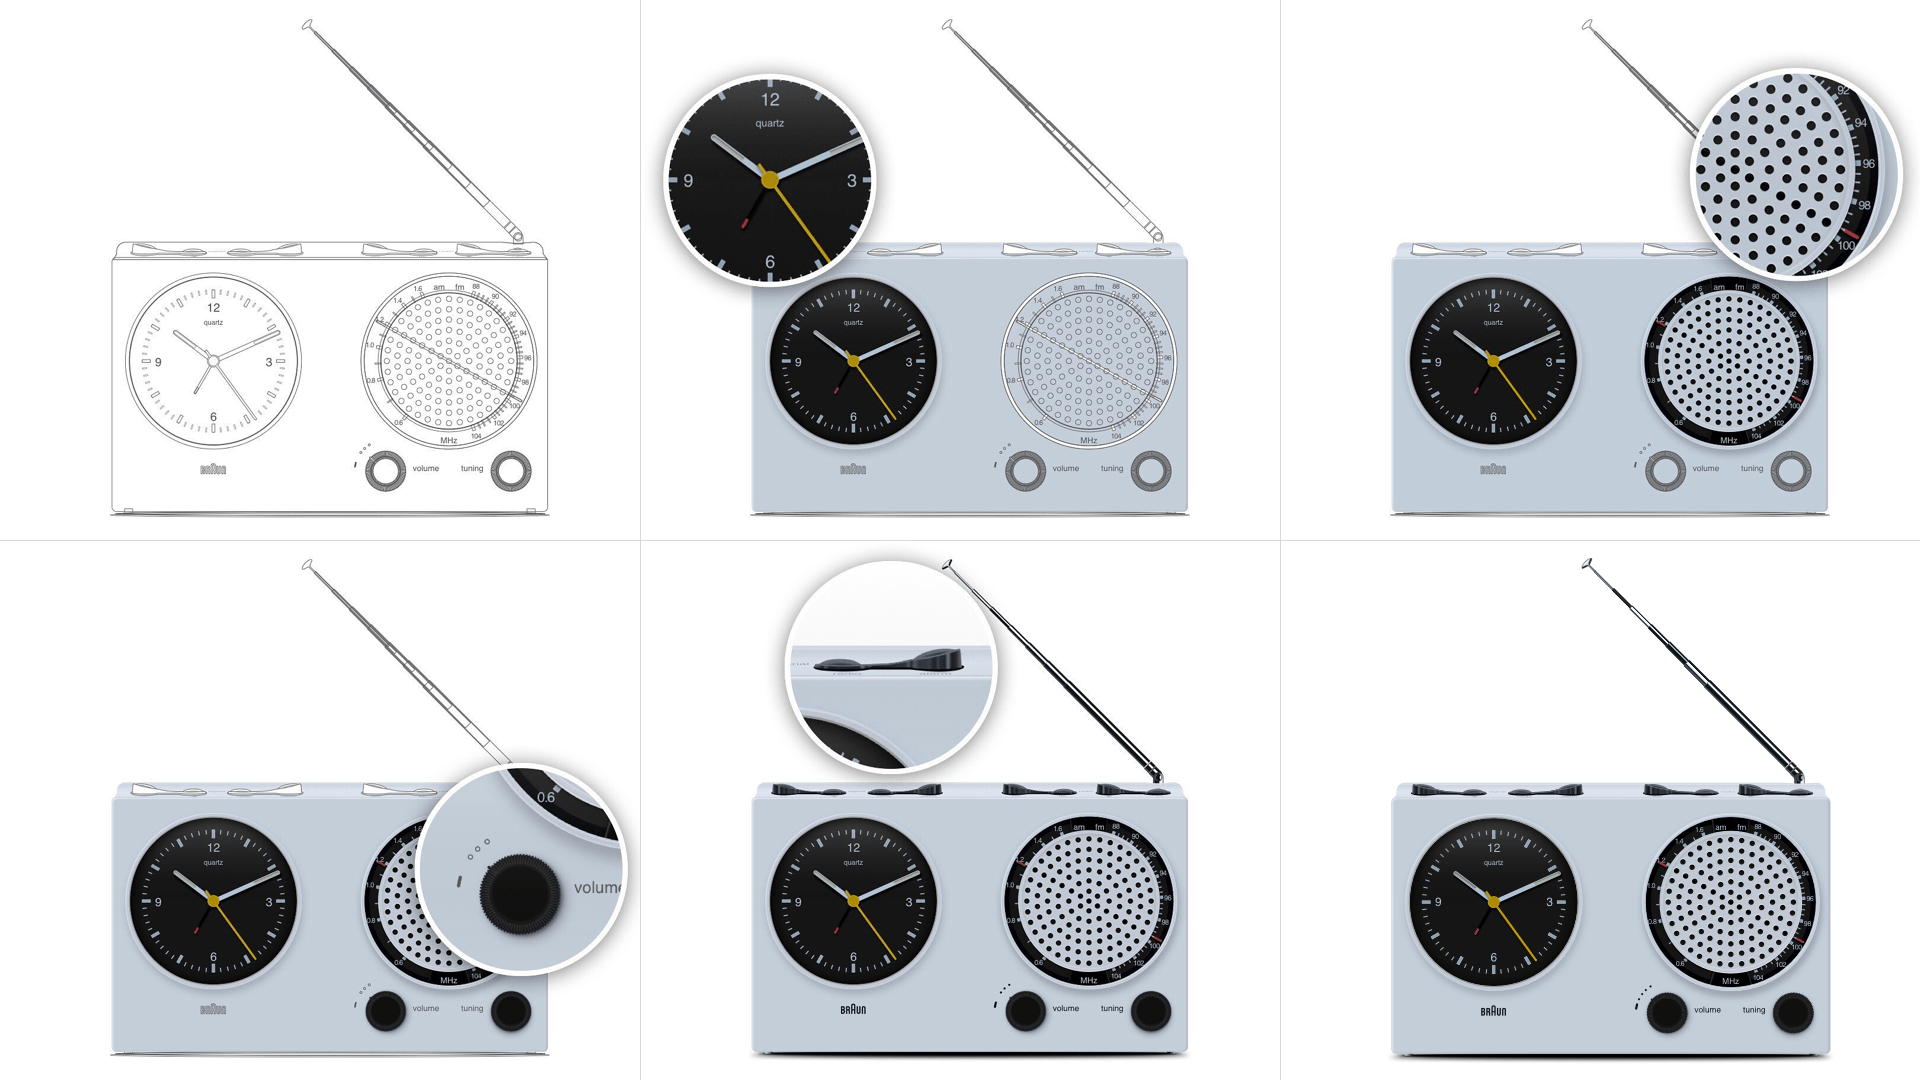 Six images, showing the progress of recreating a photorealistic Braun signal radio ABR 21 in Sketch by building each section one at a time.